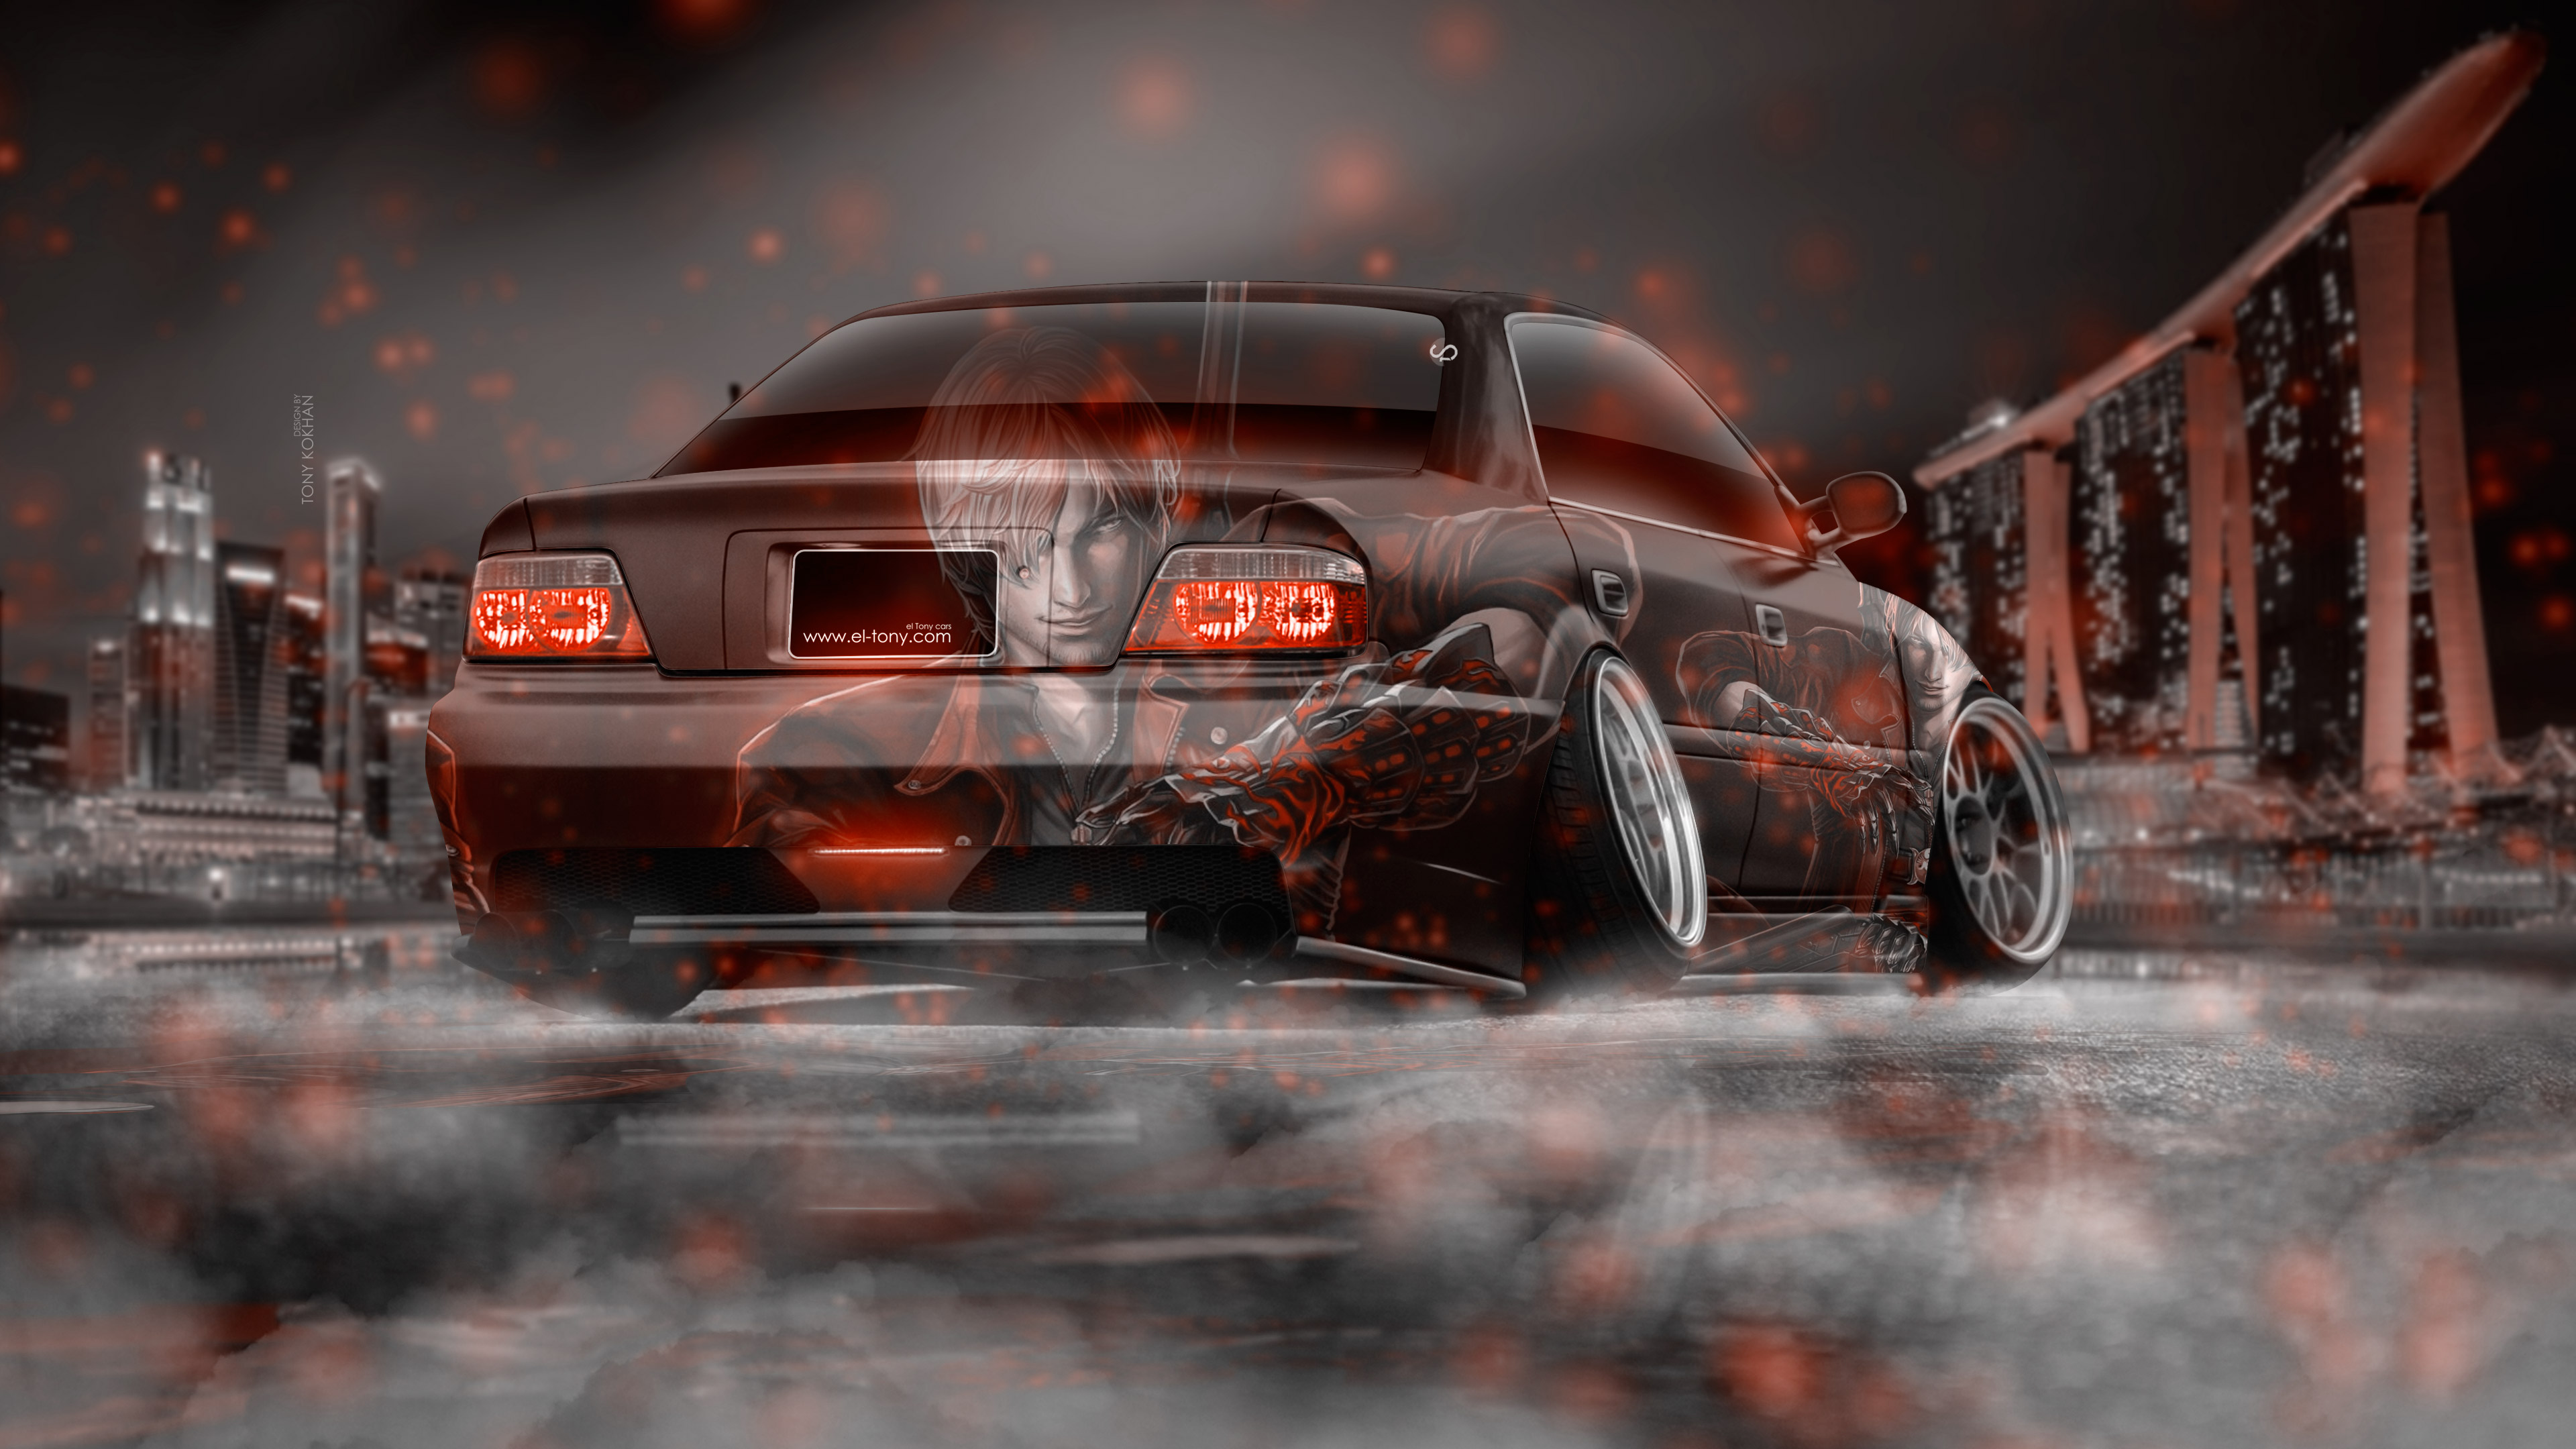 Toyota Chaser Jzx100 Jdm Tuning Devil My Cry Aerography